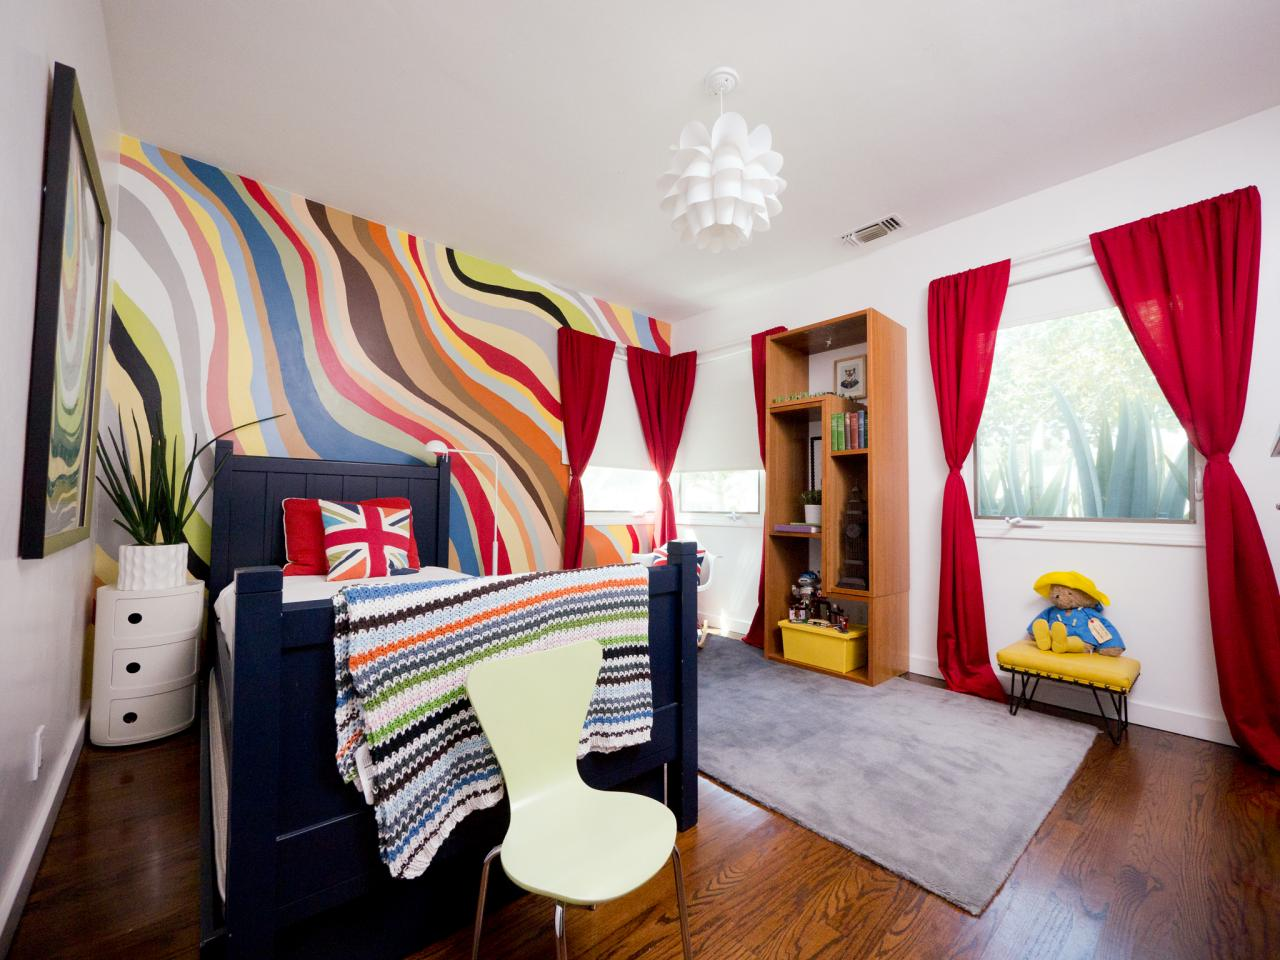 An eclectic colorful boy 39 s room kids room ideas for for Room decor for 10 year old boy